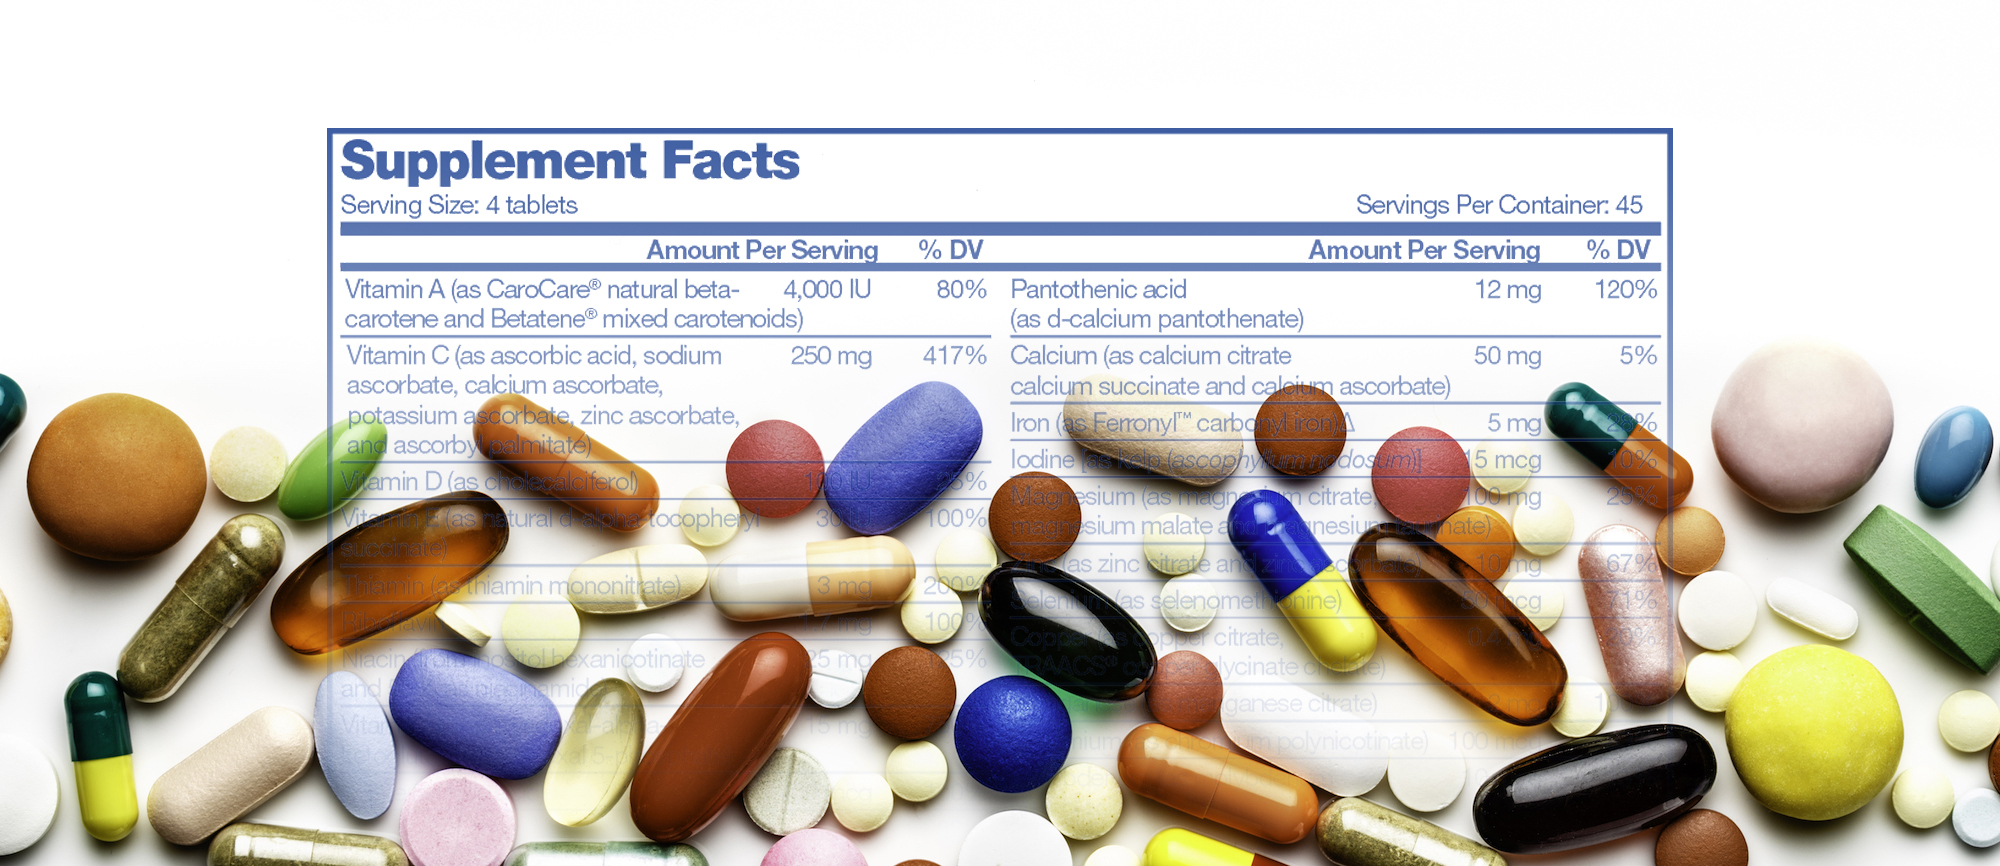 Supplement Facts Label